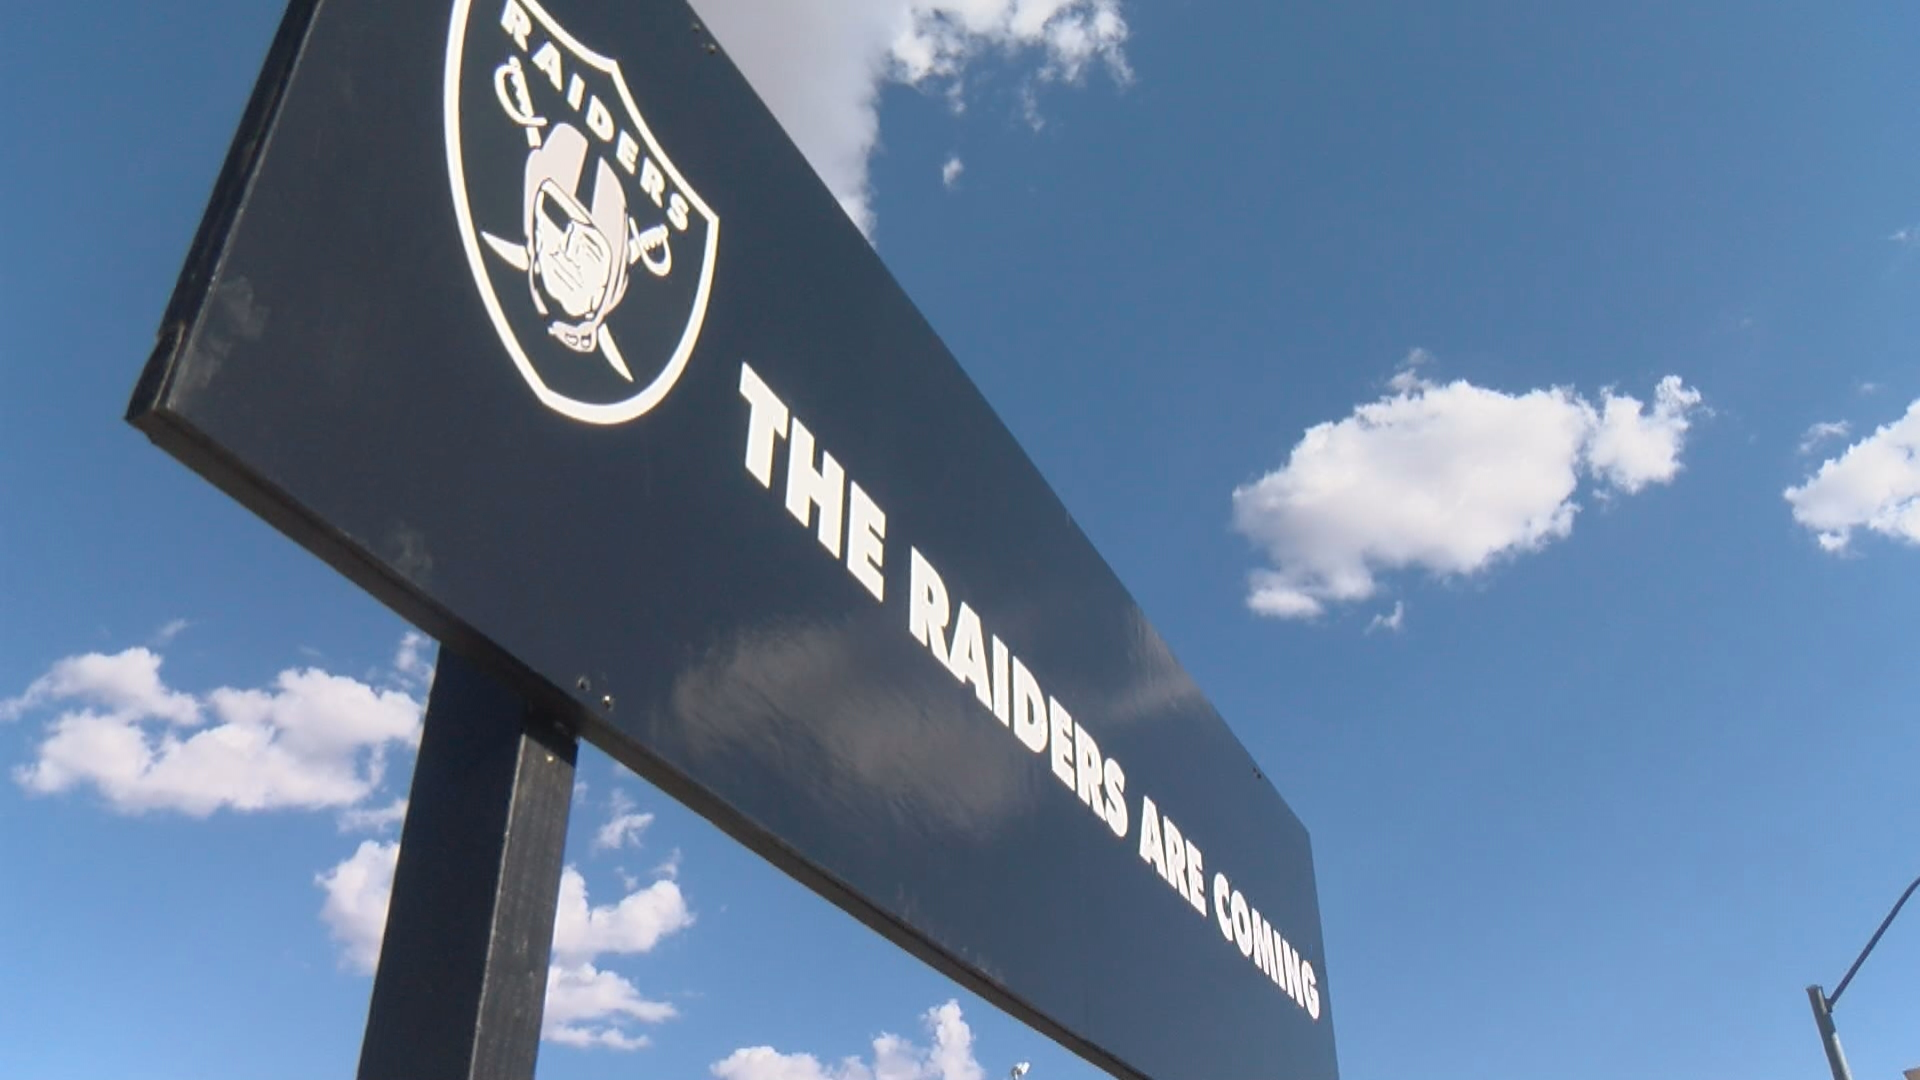 The soon-to-be Las Vegas Raiders say they're working on plans to build parking around the stadium site, but that's just one problem for a project that can't afford any delay. (KSNV)